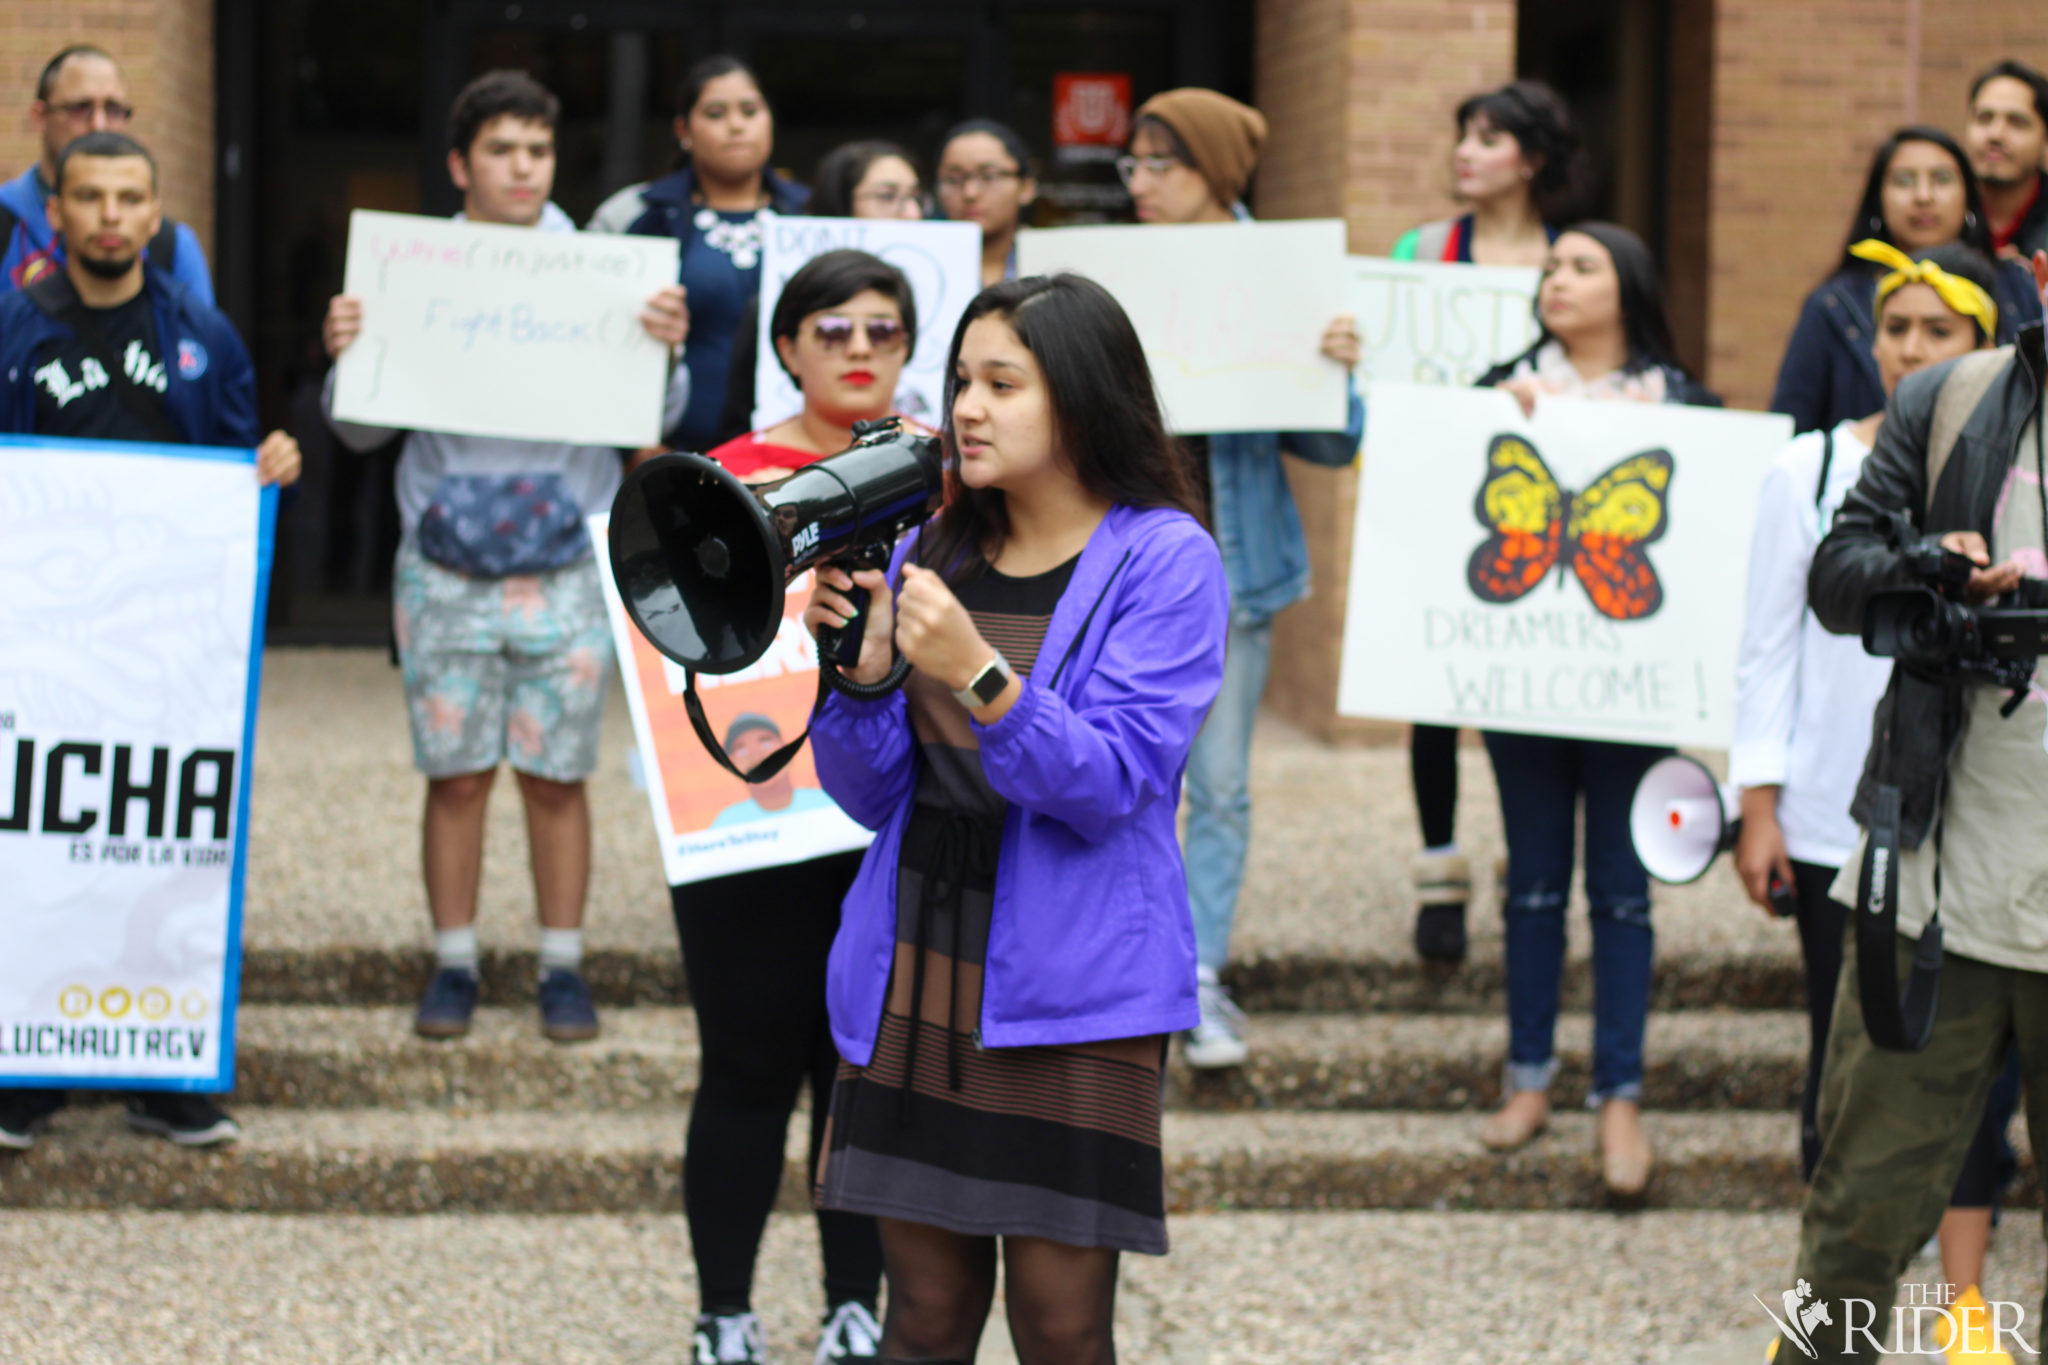 """Alondra Galvan, president of the UTRGV Student Government Association, speaks during the rally of the """"Solidarity Walkout."""" Protesters asked Galvan if the SGA can pass a resolution to create a Dreamer Center at UTRGV. She responded by saying she and the SGA are willing to meet with students."""